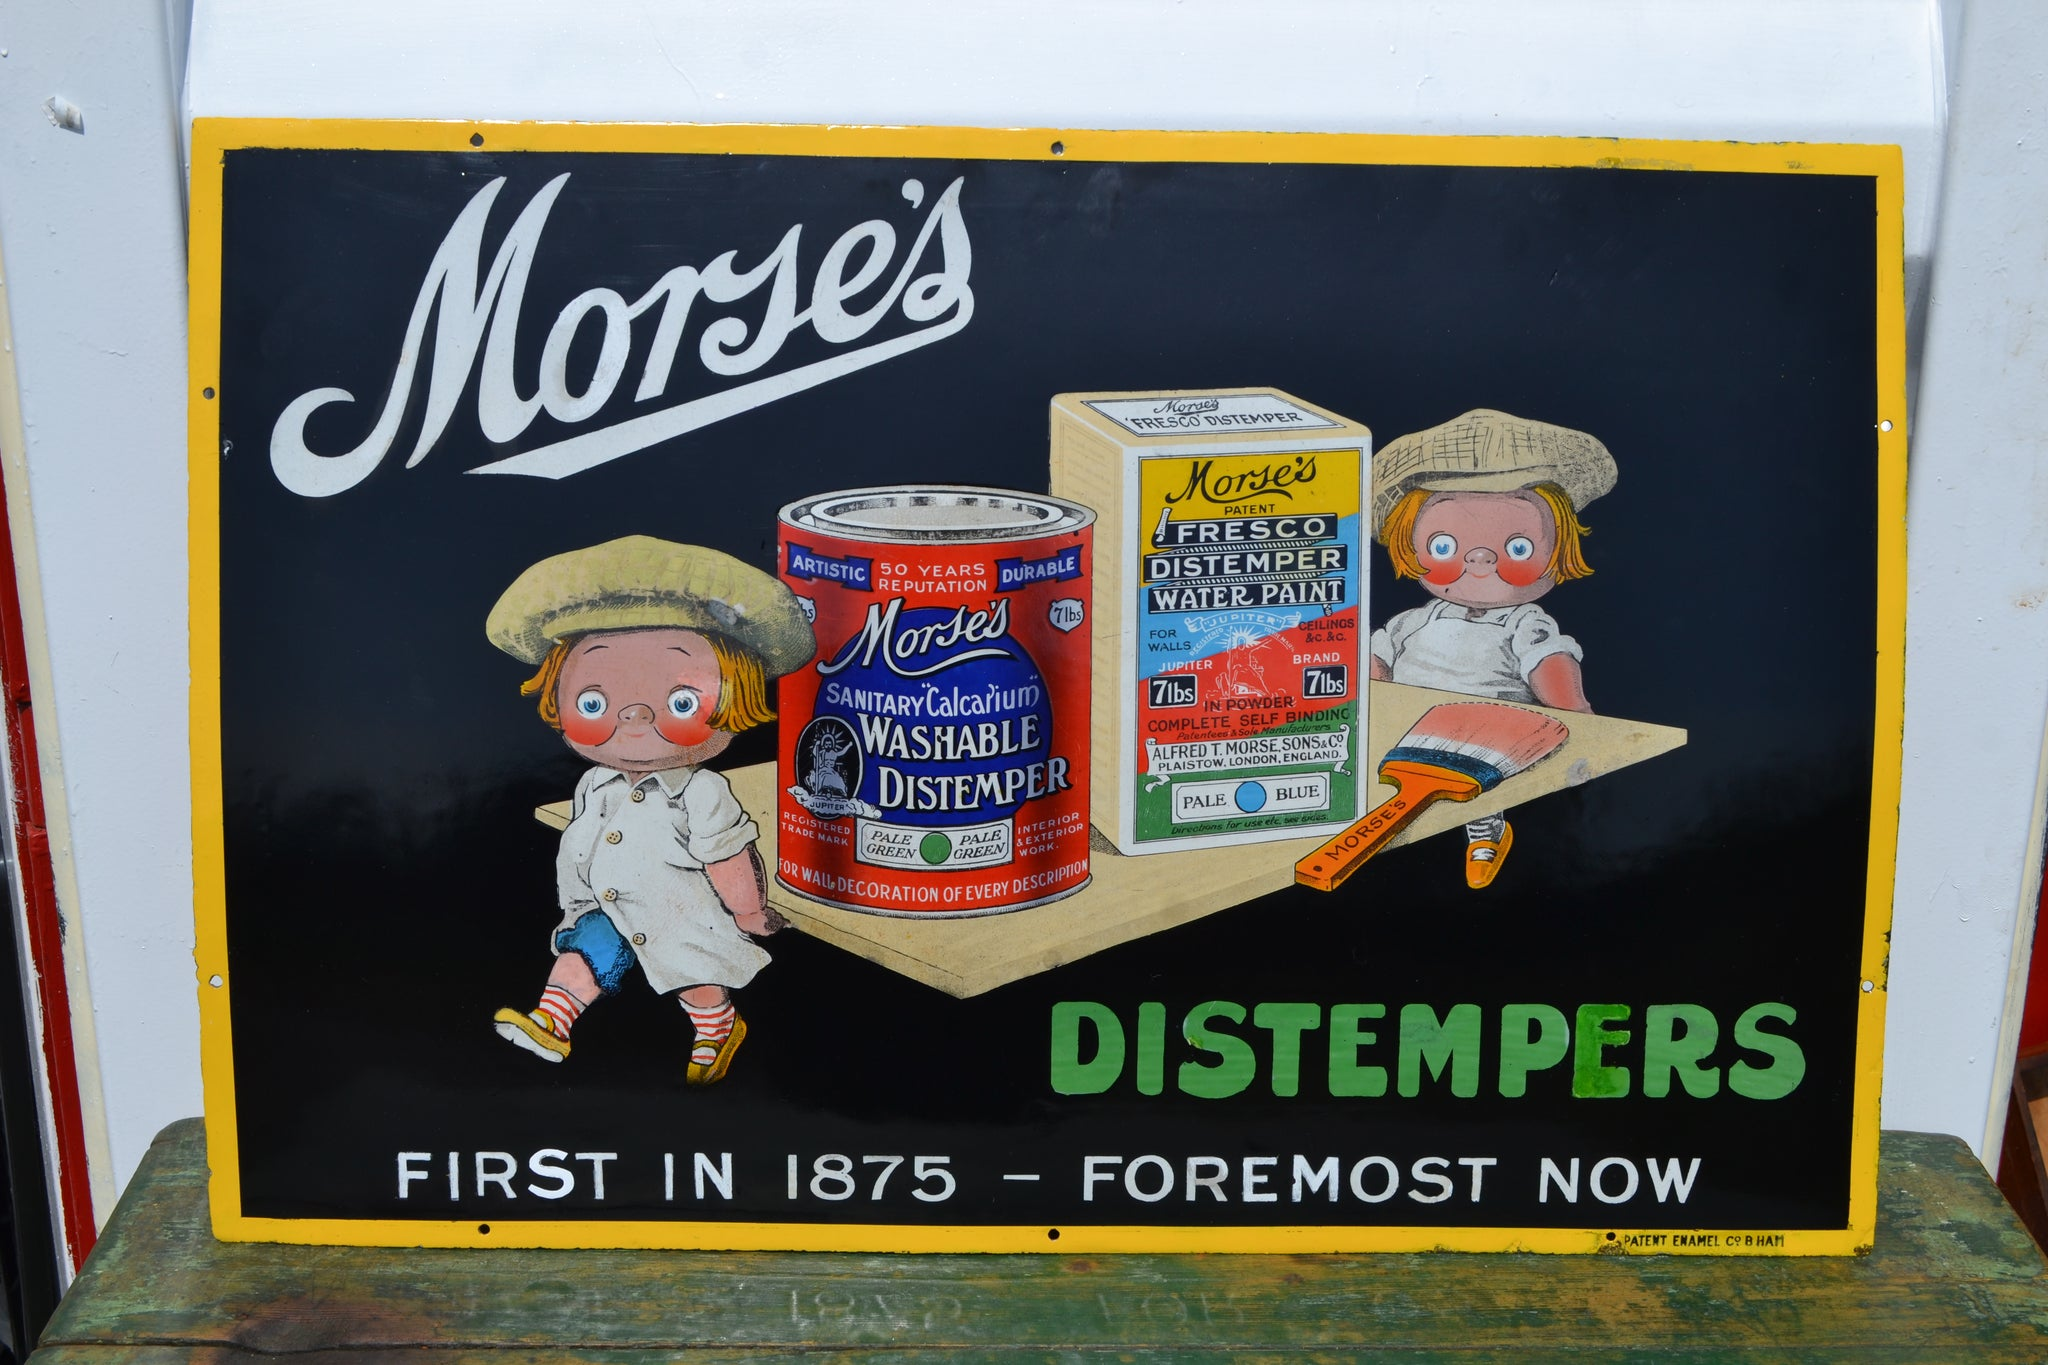 A Morse's Distempers Enamel sign